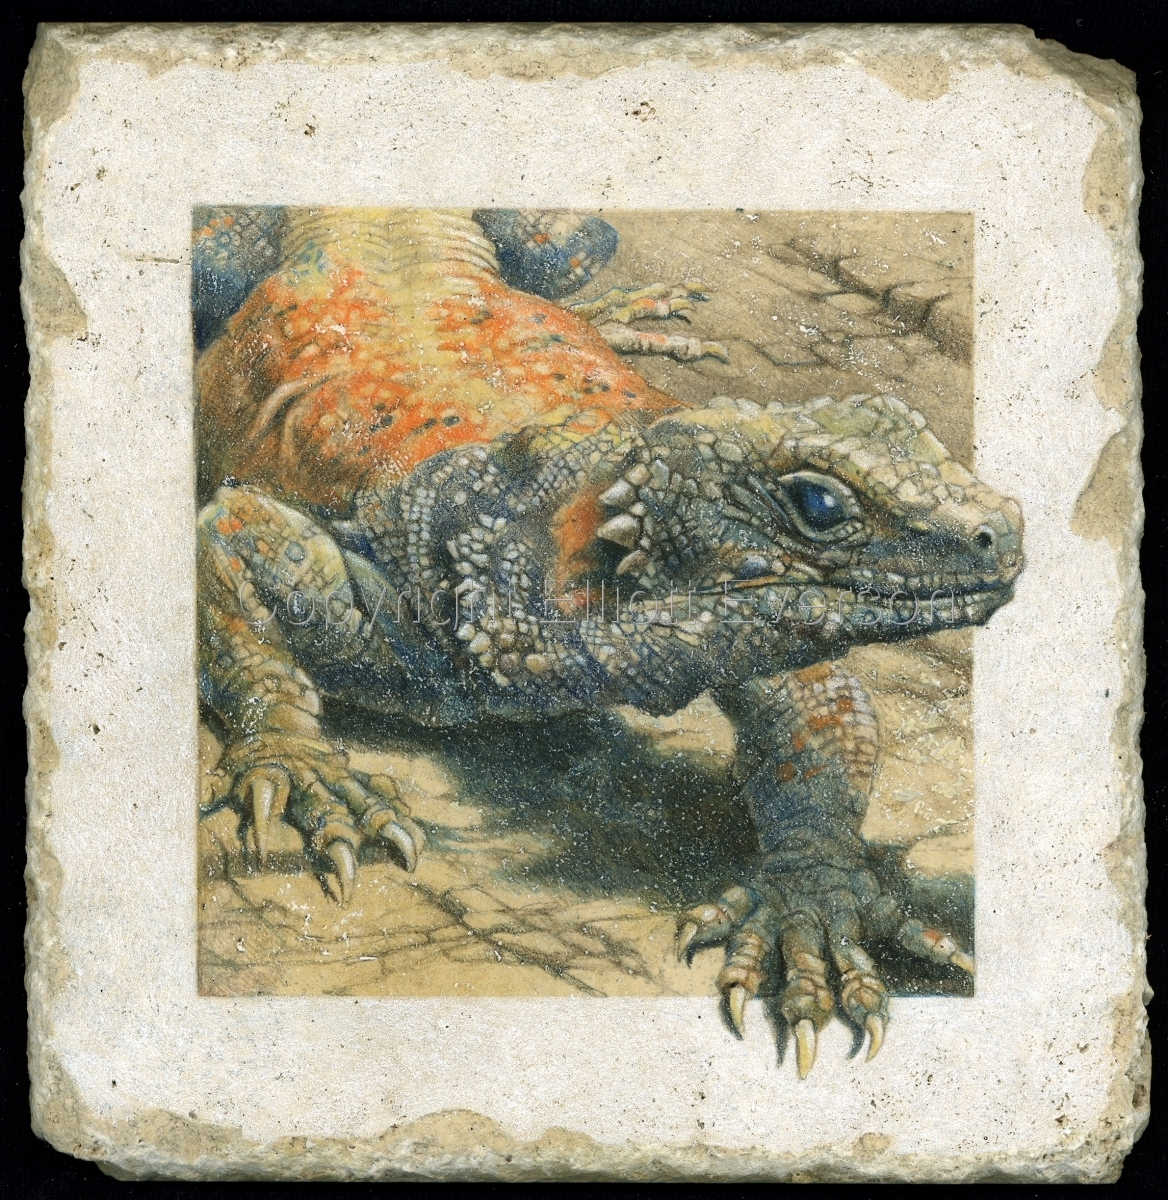 Colored Pencil drawing on stone of Chuckwalla Lizard (large view)